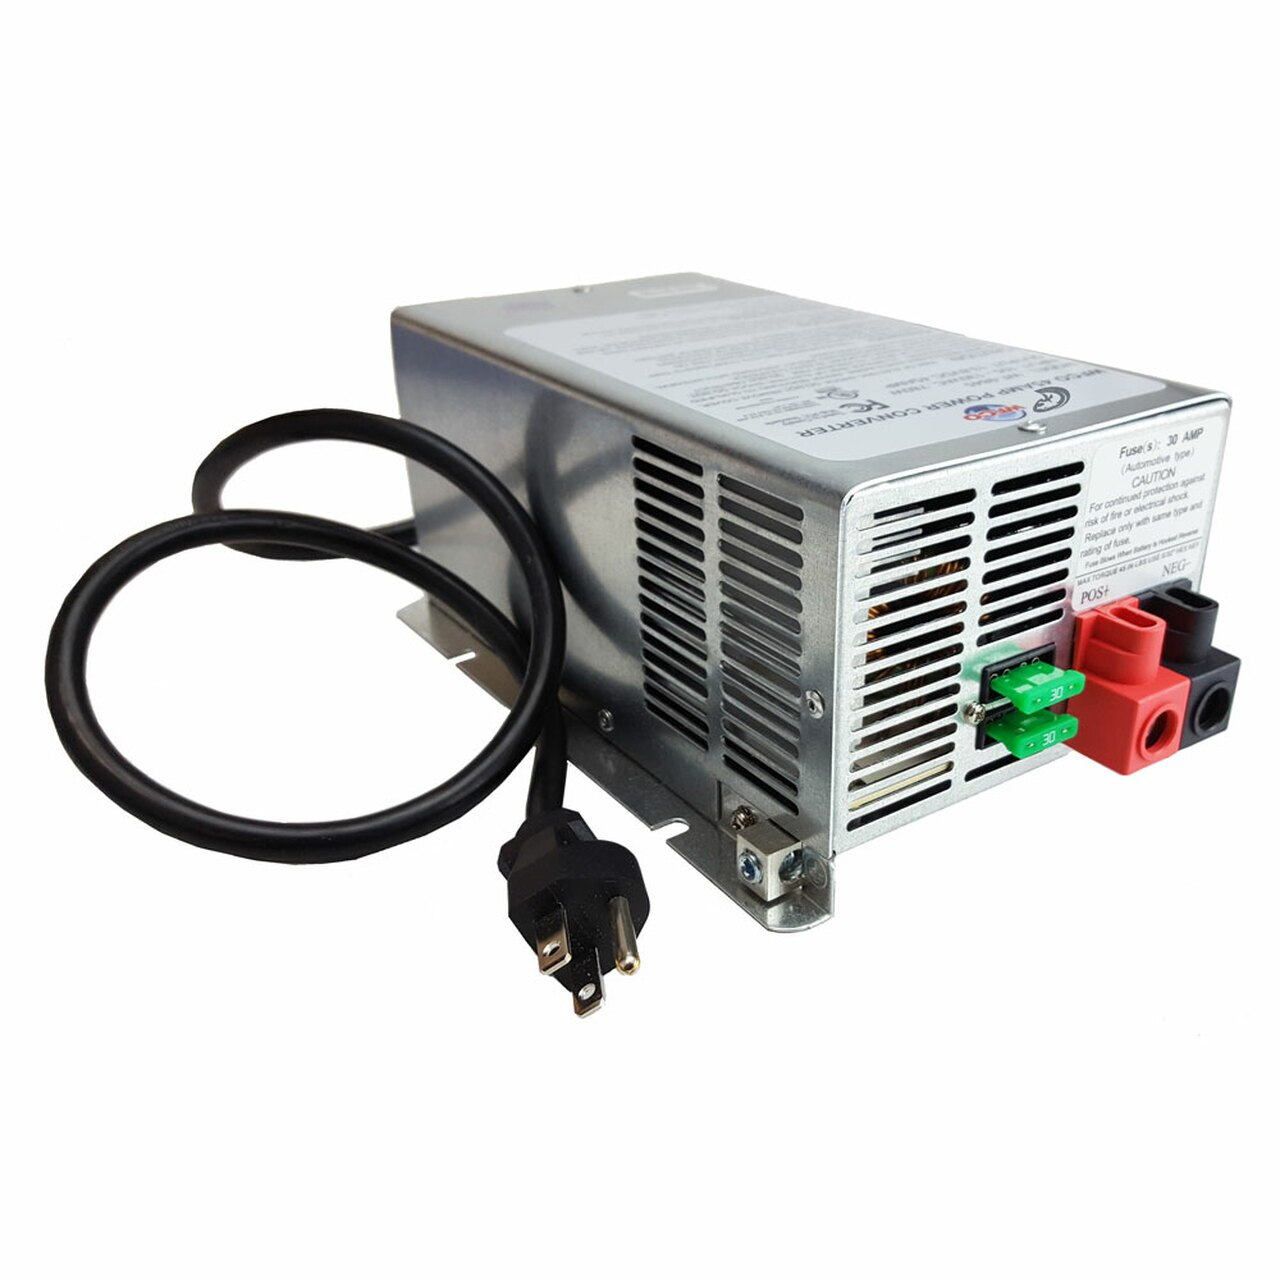 Wfco9845 Wf8845 45amp Power Converter  Charger  Charger Is A Versatile  Advanced